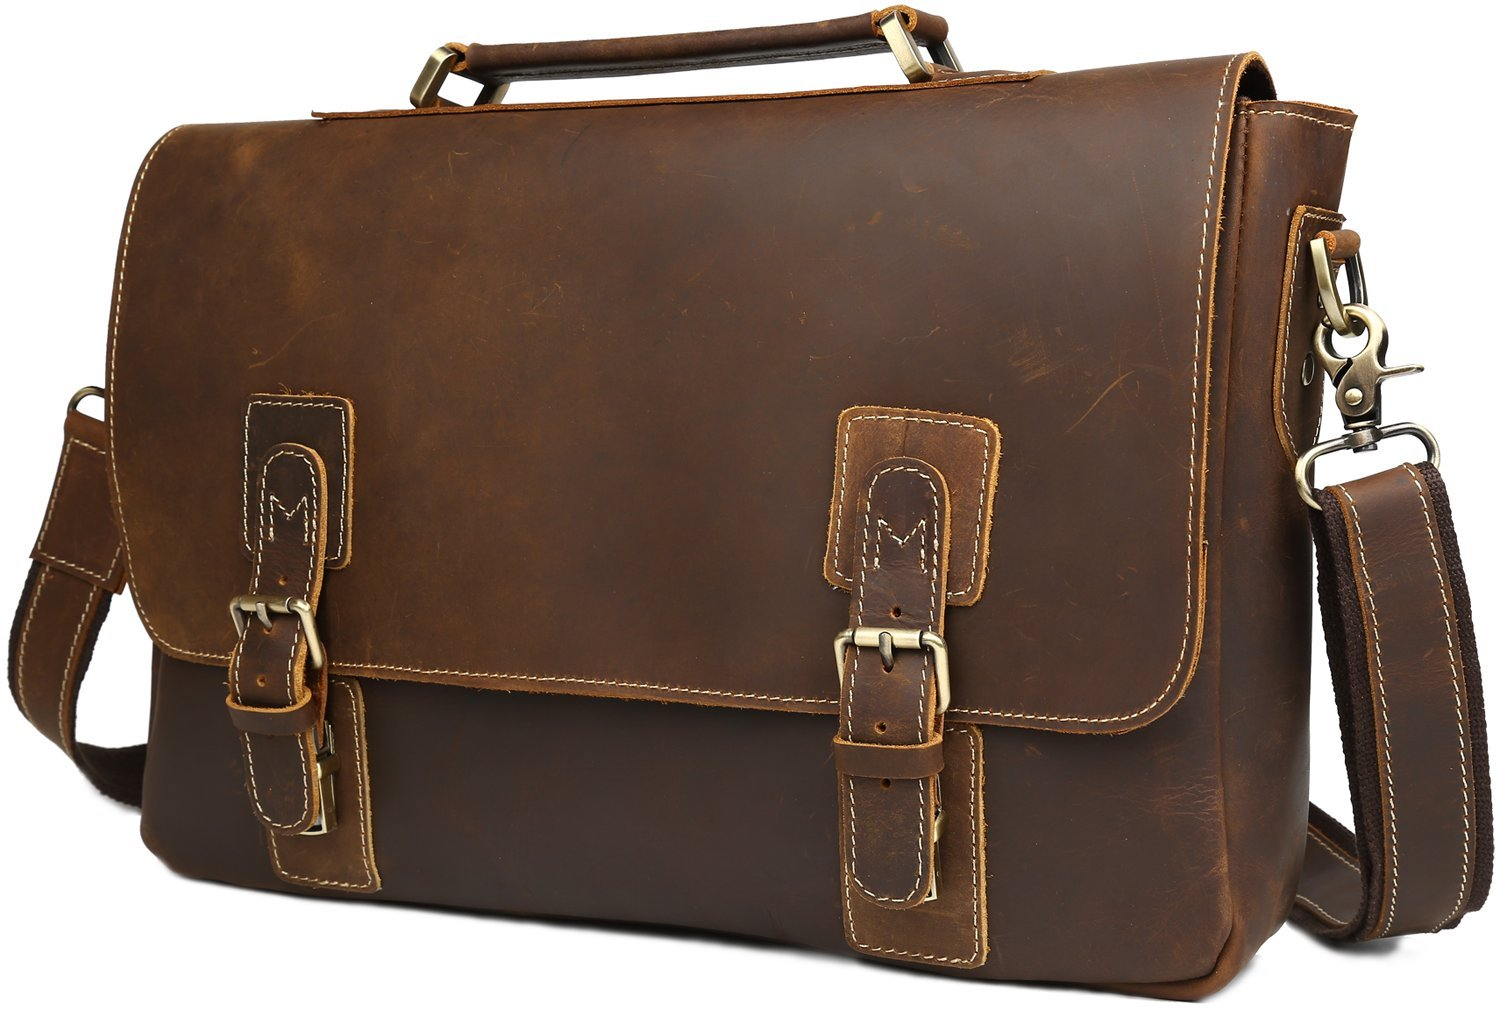 "Iswee Crazy Horse Cowhide Genuine Leather Flap Briefcase 14"" in Laptop Bag Messenger Handbag (Brown)"